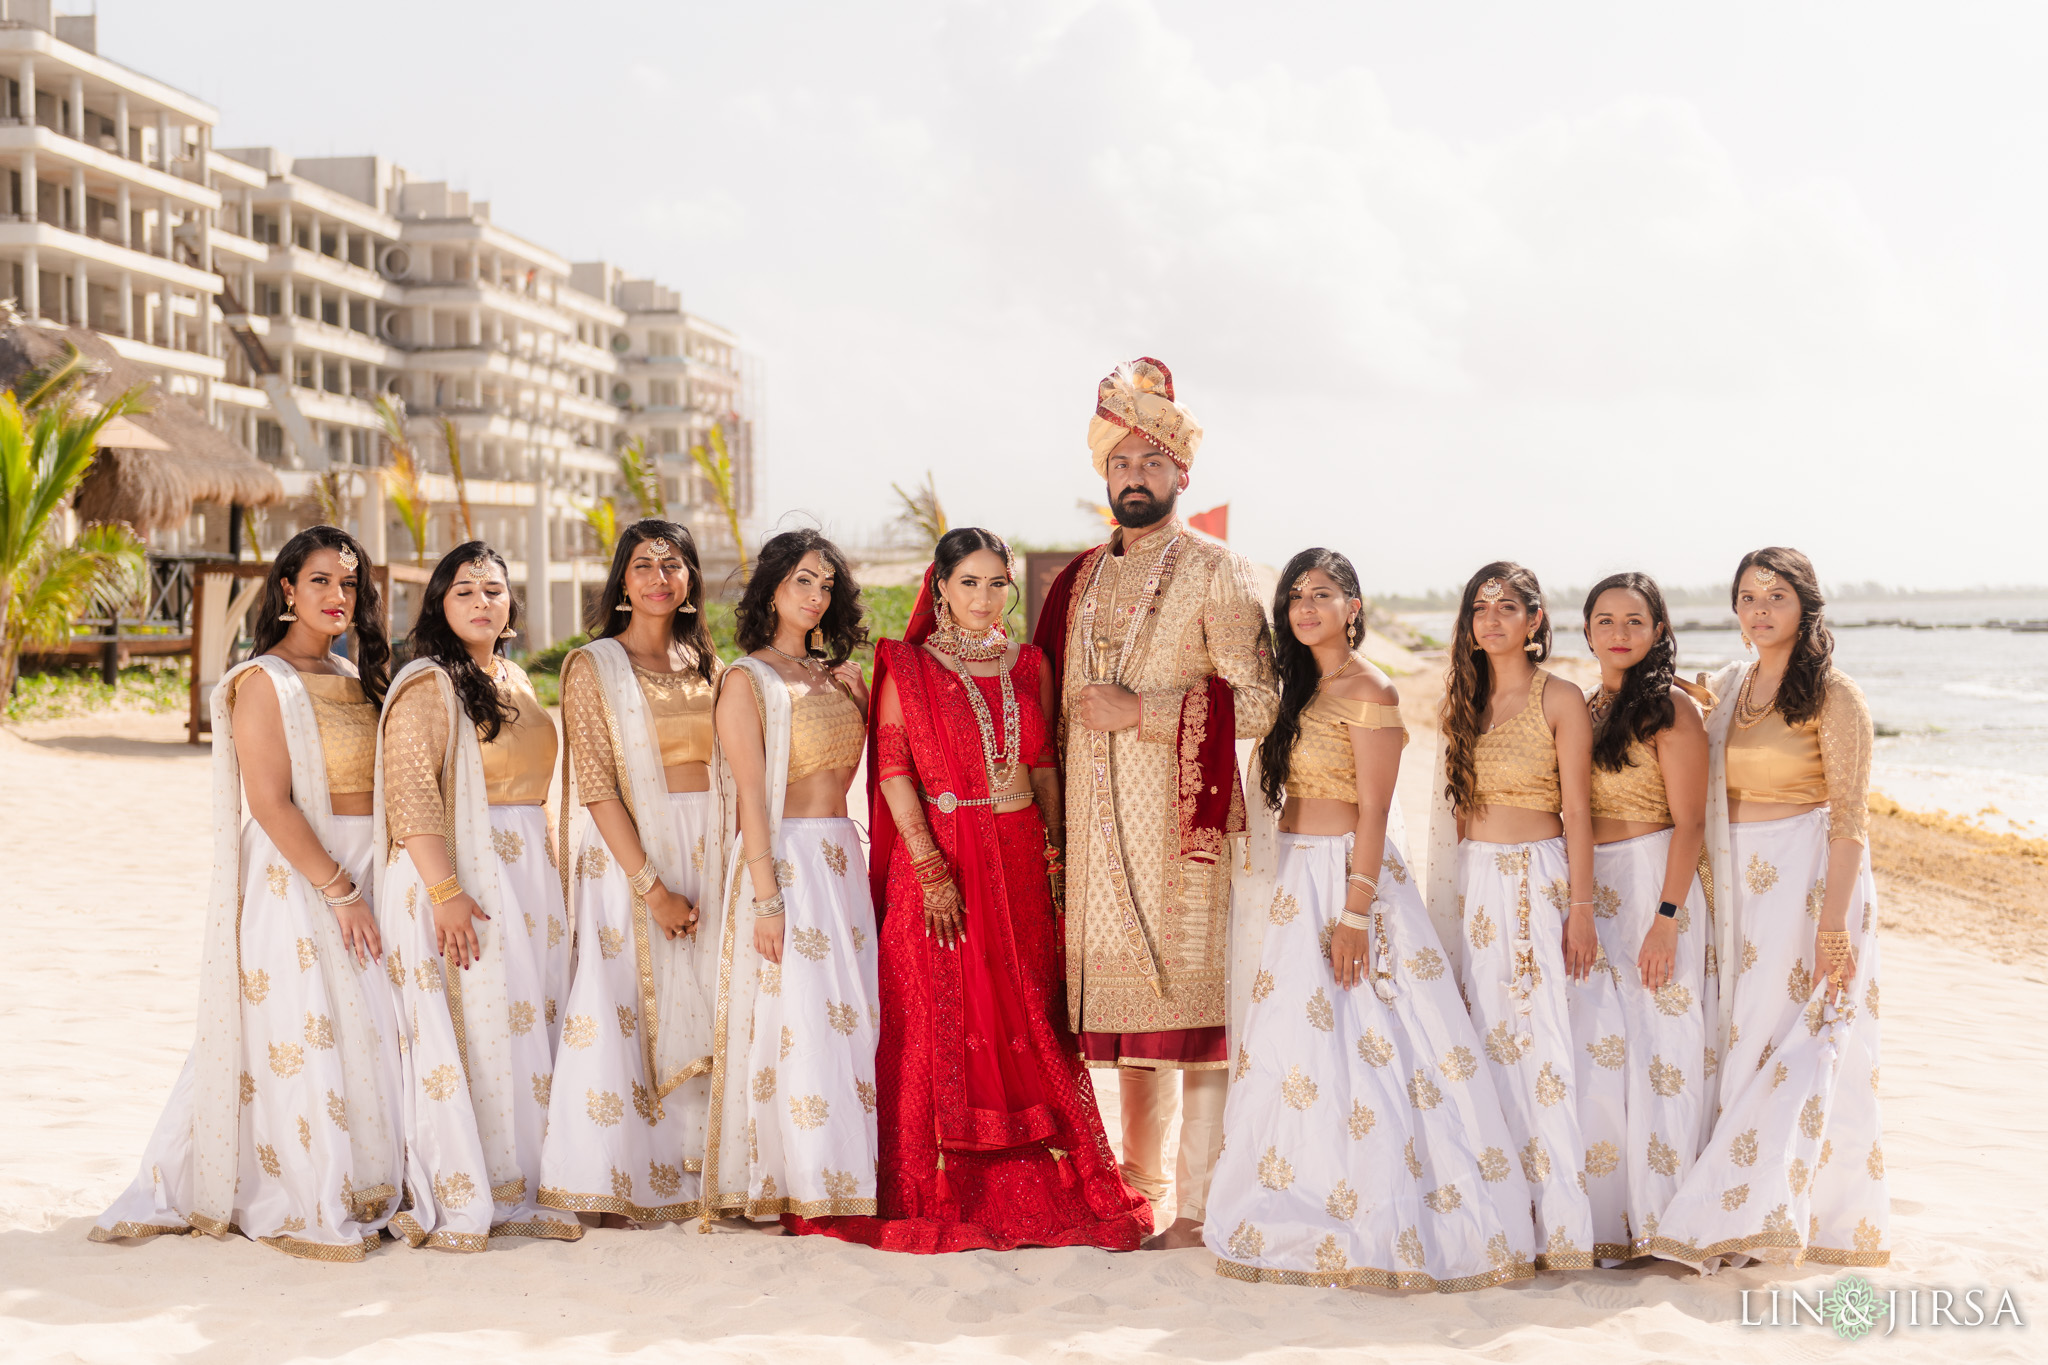 17 Generations El Dorado Royale Cancun Mexico Indian Bridesmaids Wedding Photography